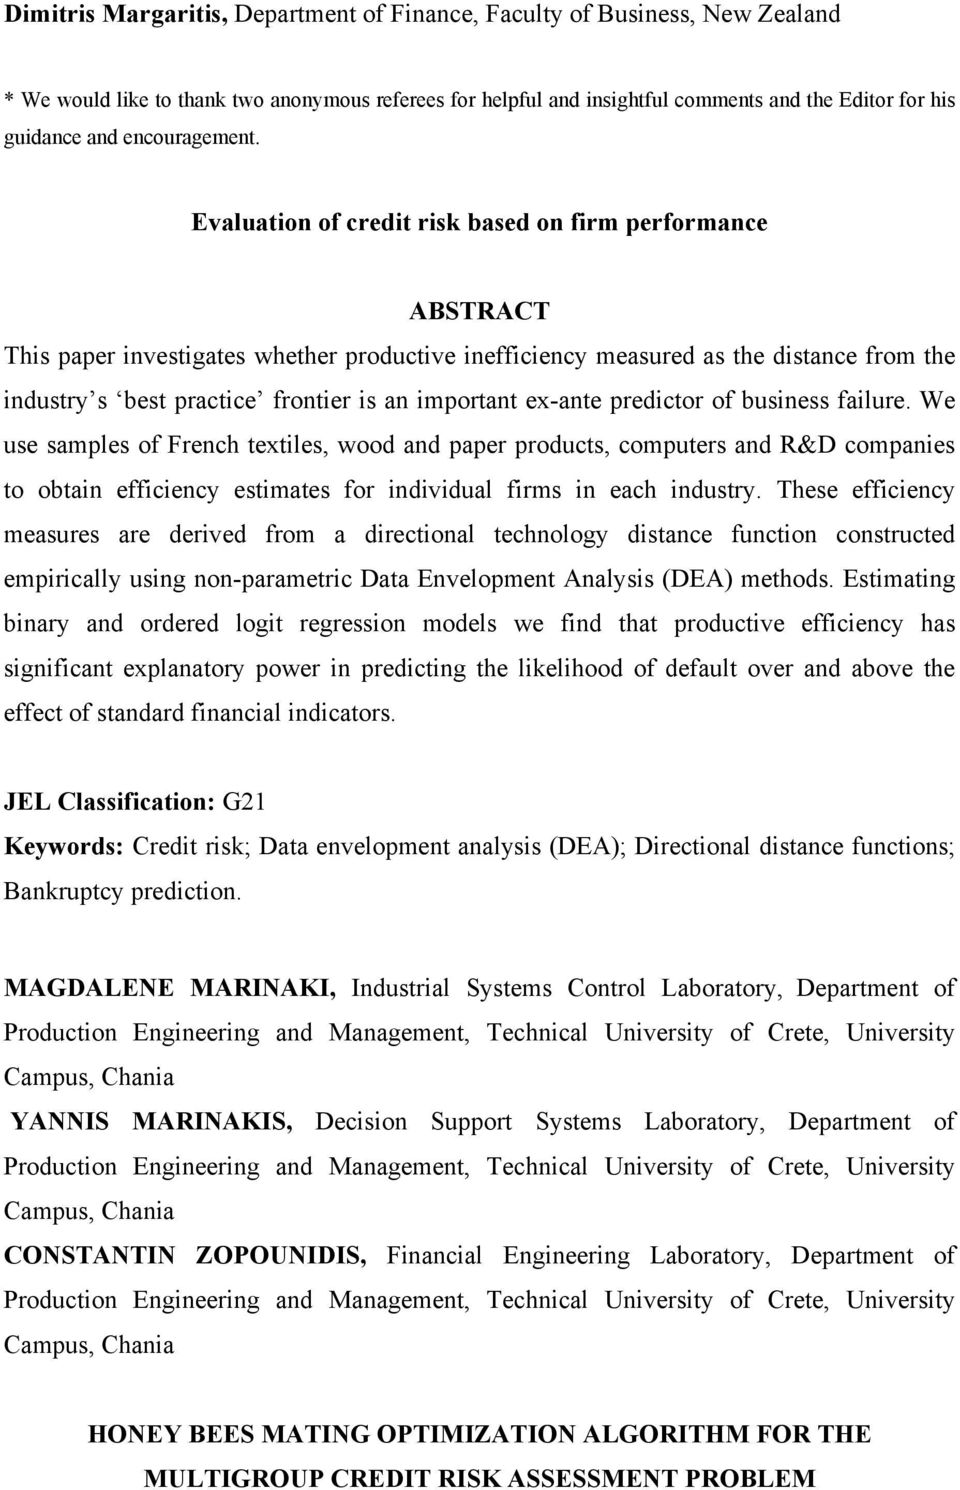 Evaluation of credit risk based on firm performance This paper investigates whether productive inefficiency measured as the distance from the industry s best practice frontier is an important ex-ante